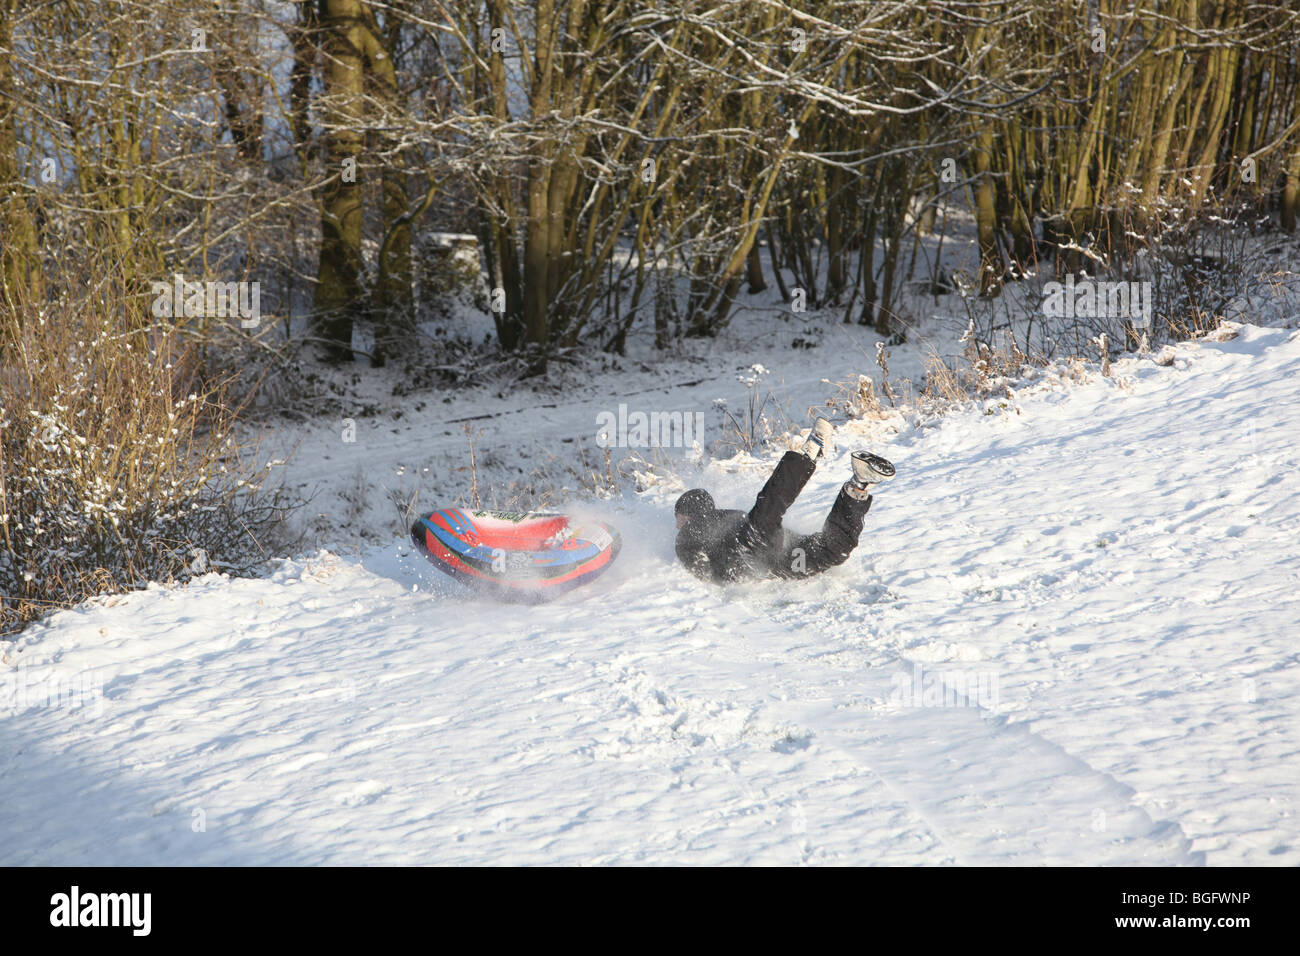 A man falls from an inflatable sledge in snow on the edge of a steep drop in the big freeze of 2010 - Stock Image